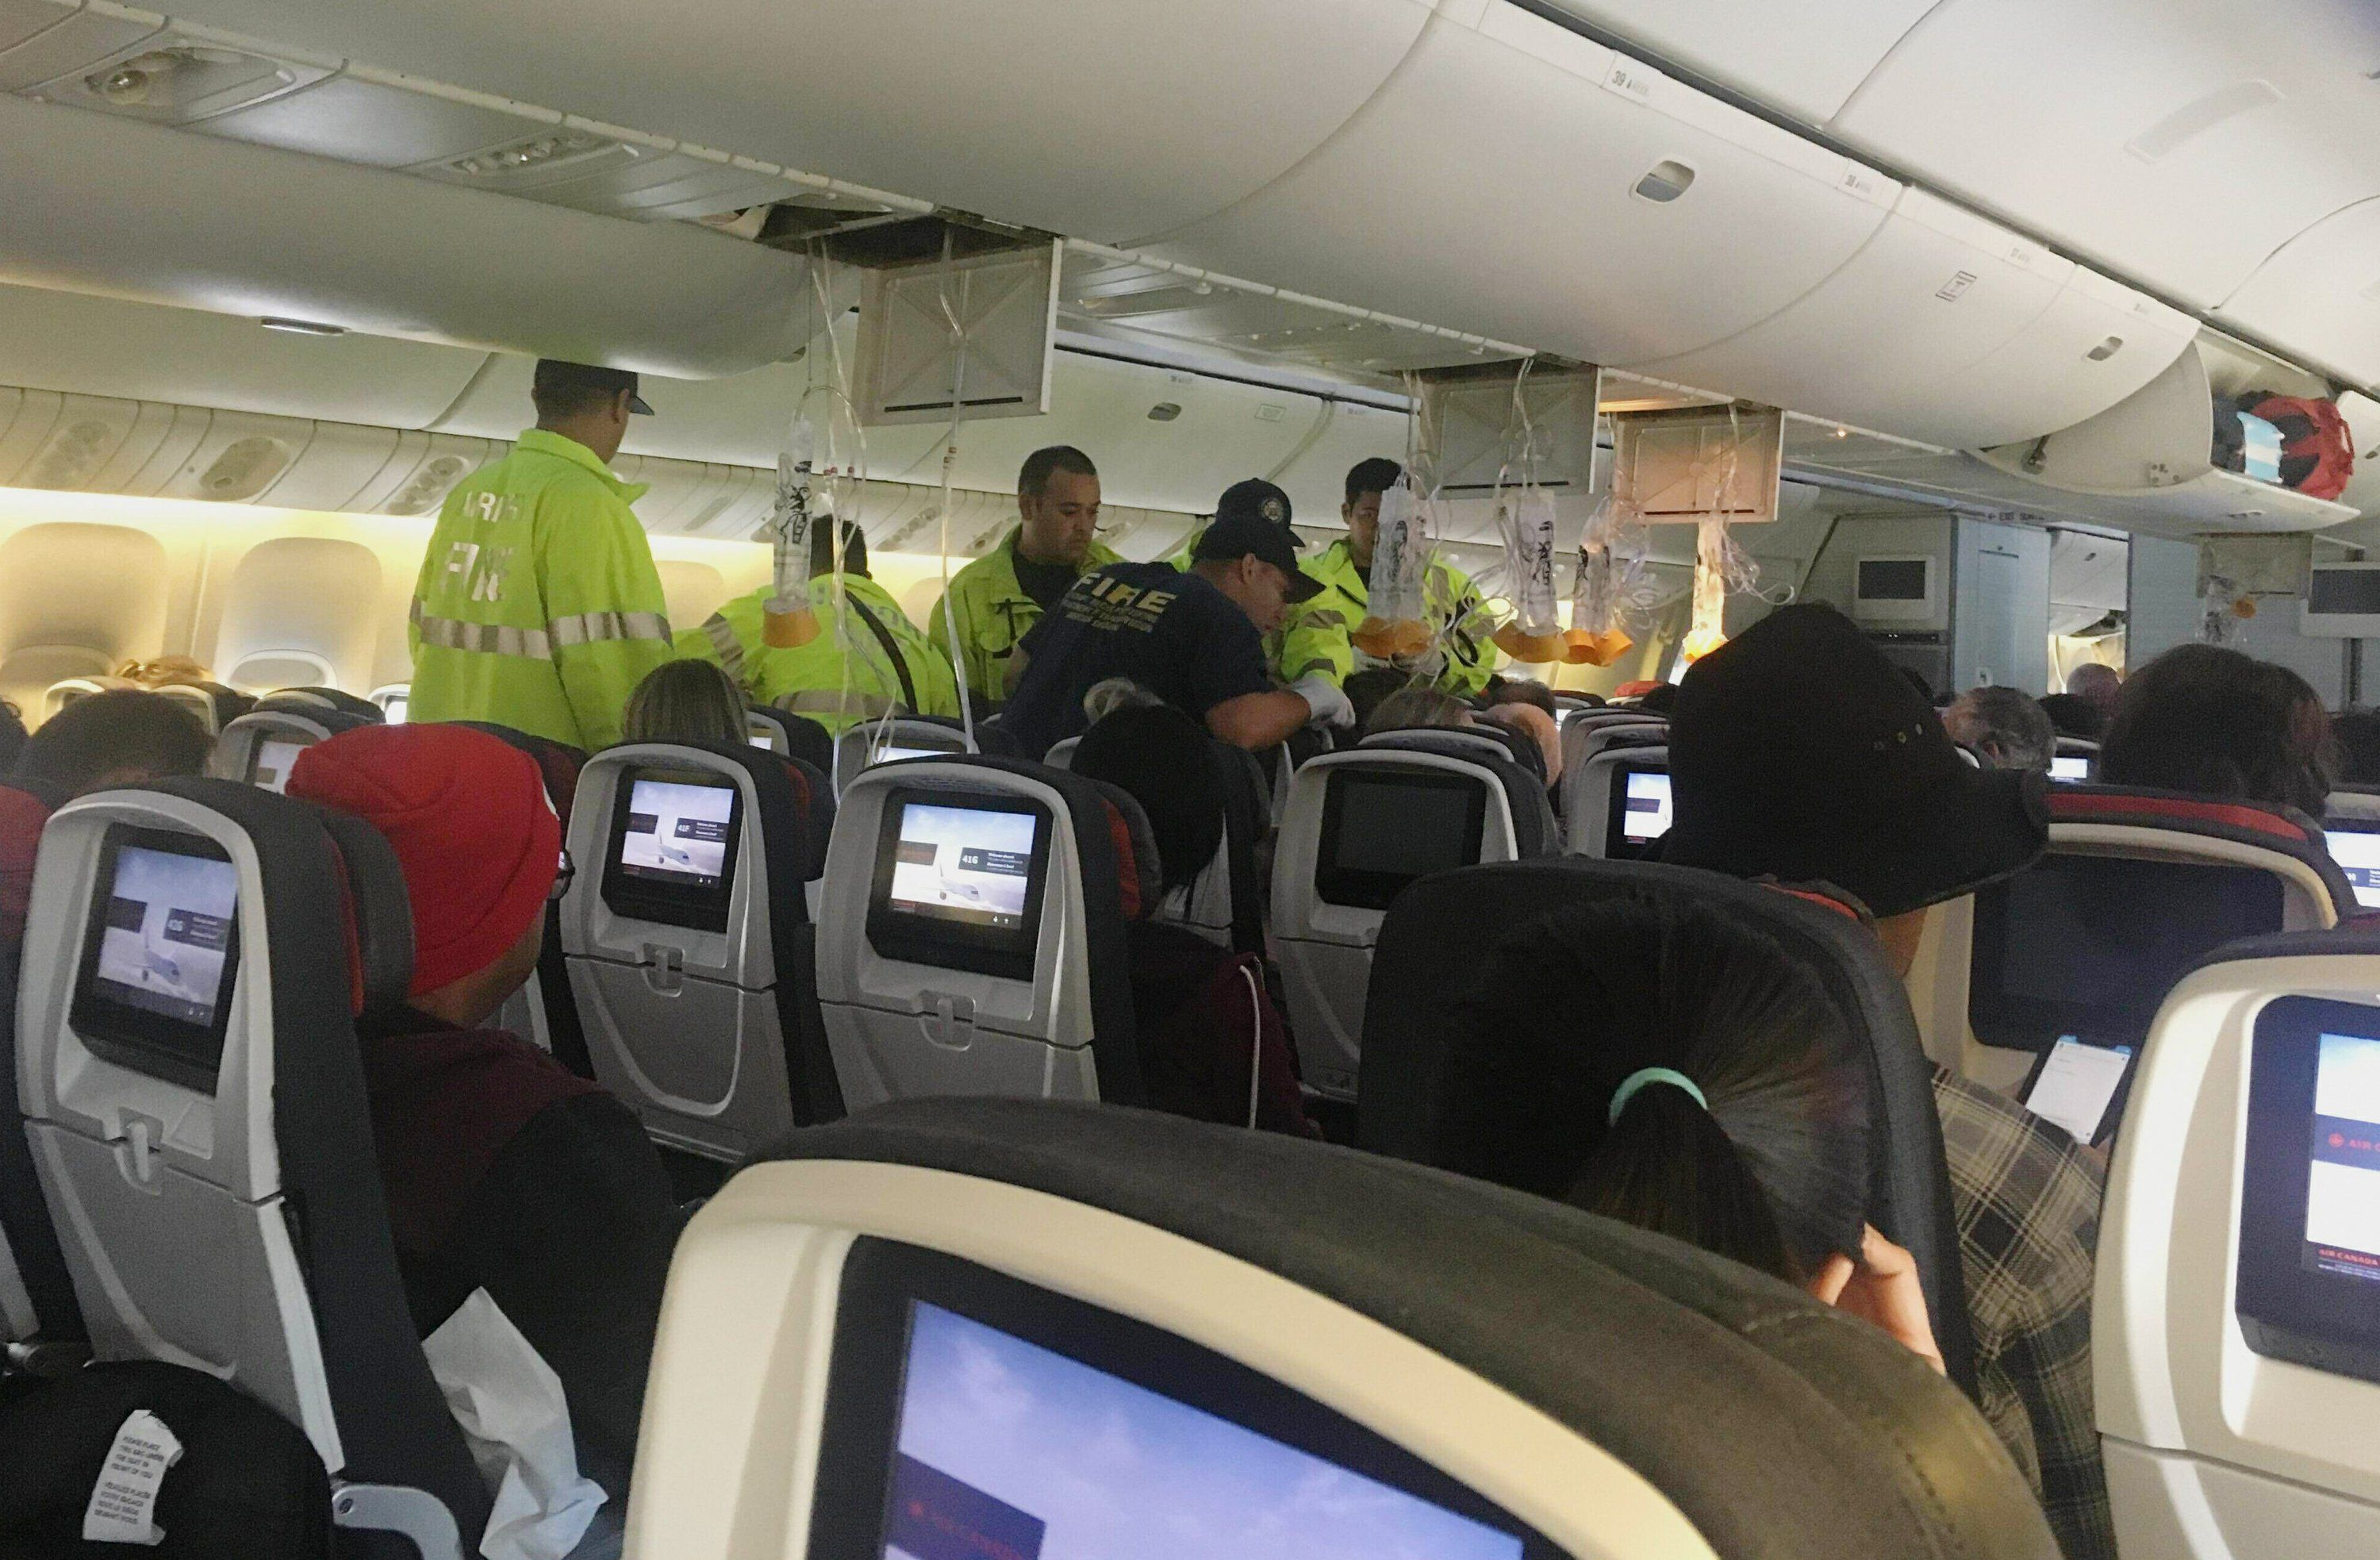 Passengers Violently Ejected From Seats On Turbulent Flight Air